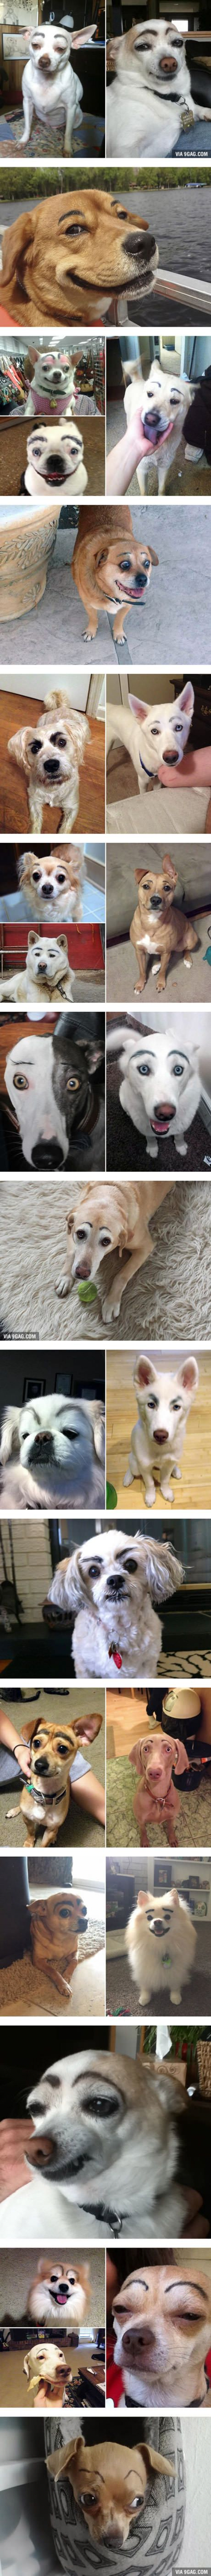 Dogs Look So Much Better With Makeup Eyebrows